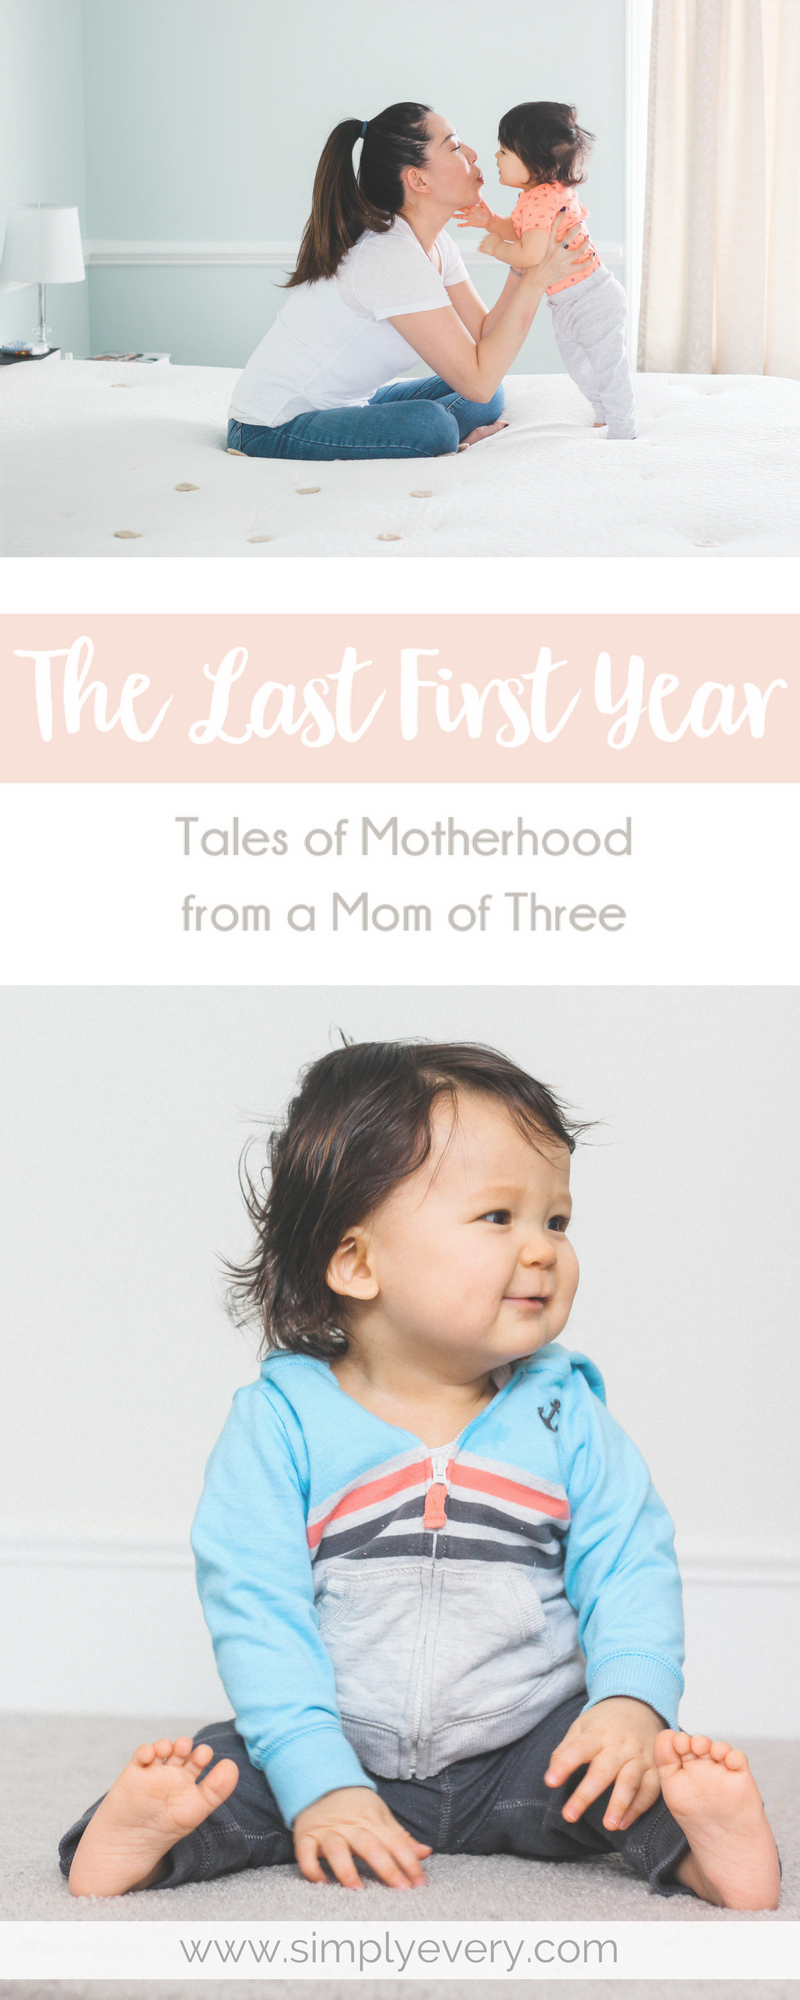 The Last First Year - Tales of Motherhood from a Mom of Three